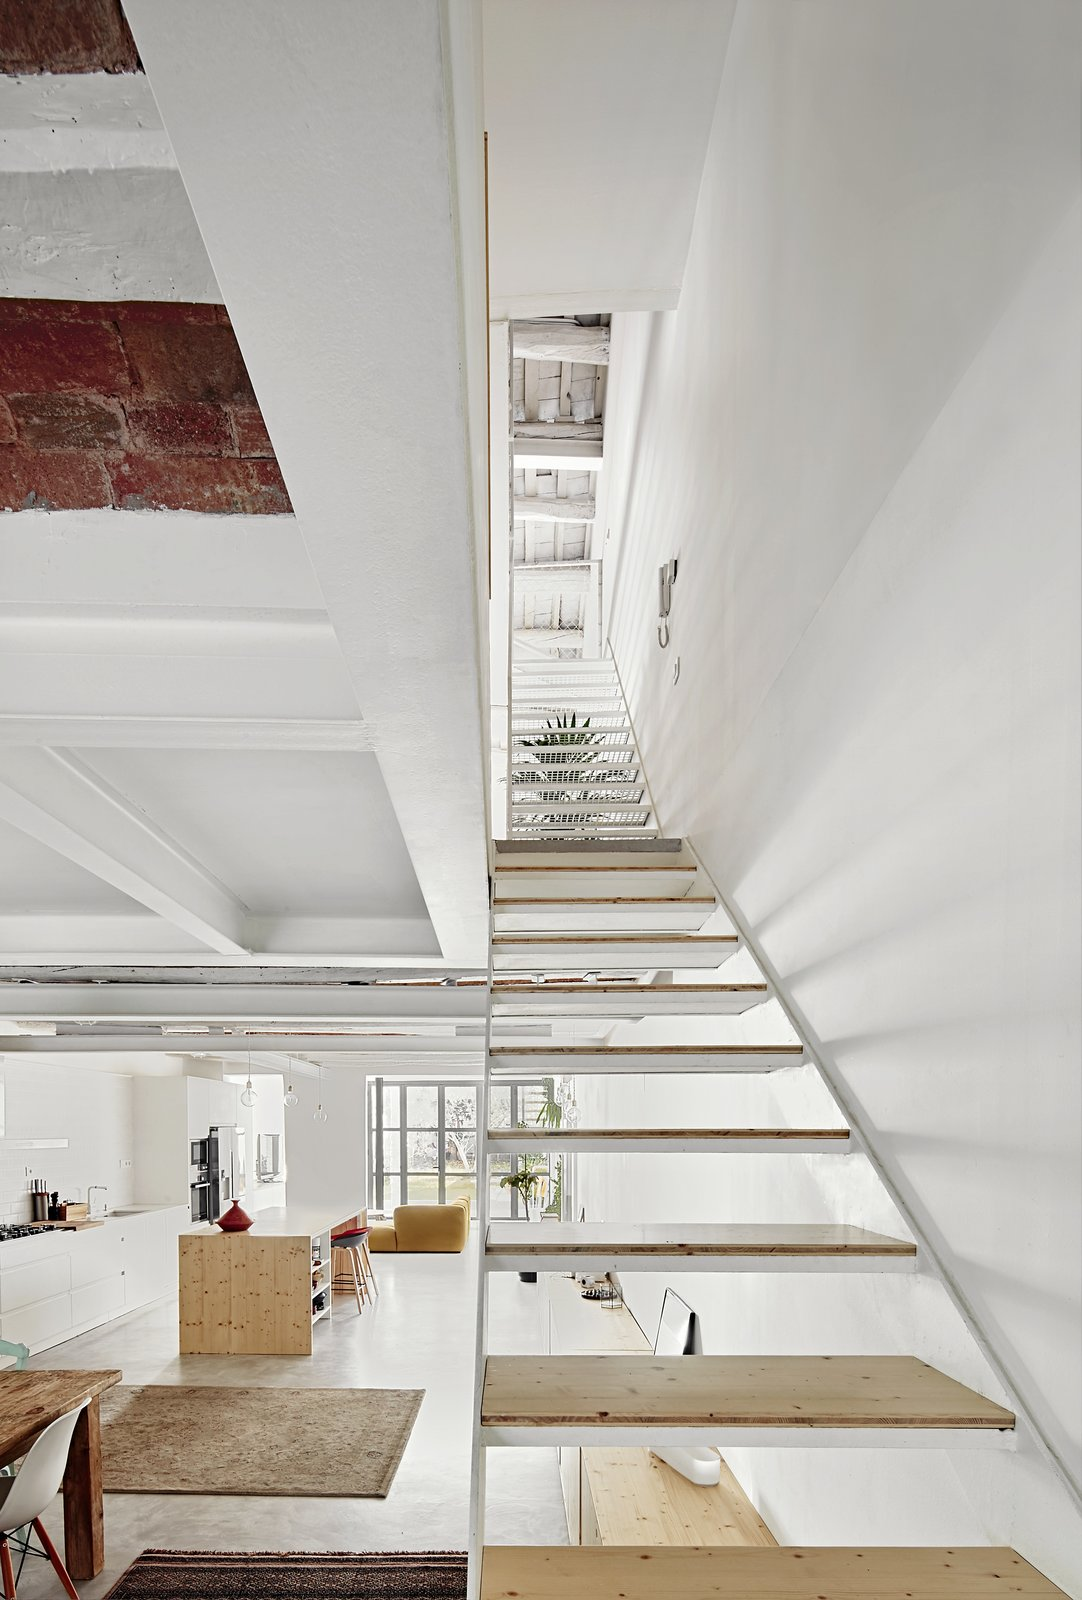 Staircase, Metal Tread, and Wood Tread  Photo 11 of 11 in Can This Renovated, Loft-Like Home in Spain Be Any Dreamier?